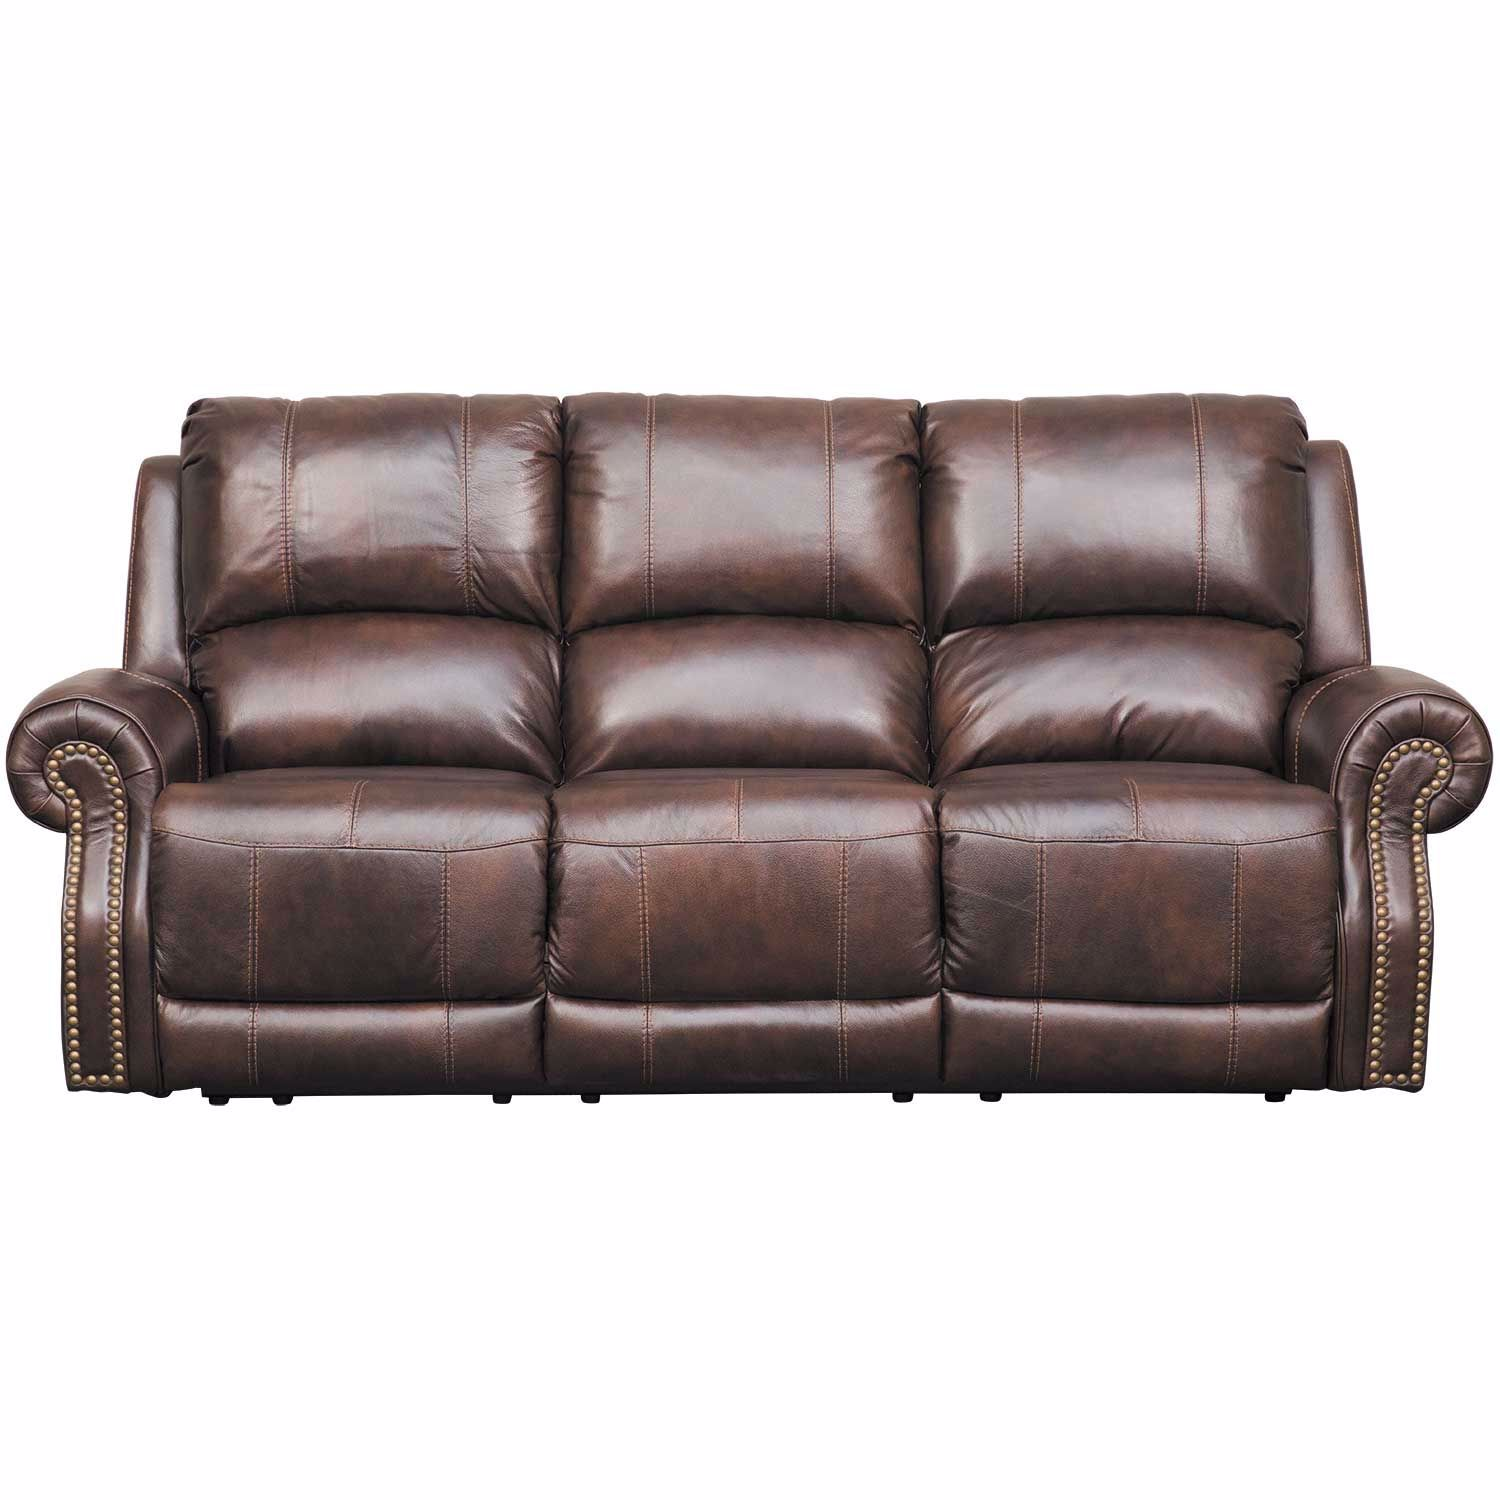 Miraculous Buncrana Italian Leather Power Reclining Sofa With Adjustable Headrest Pabps2019 Chair Design Images Pabps2019Com